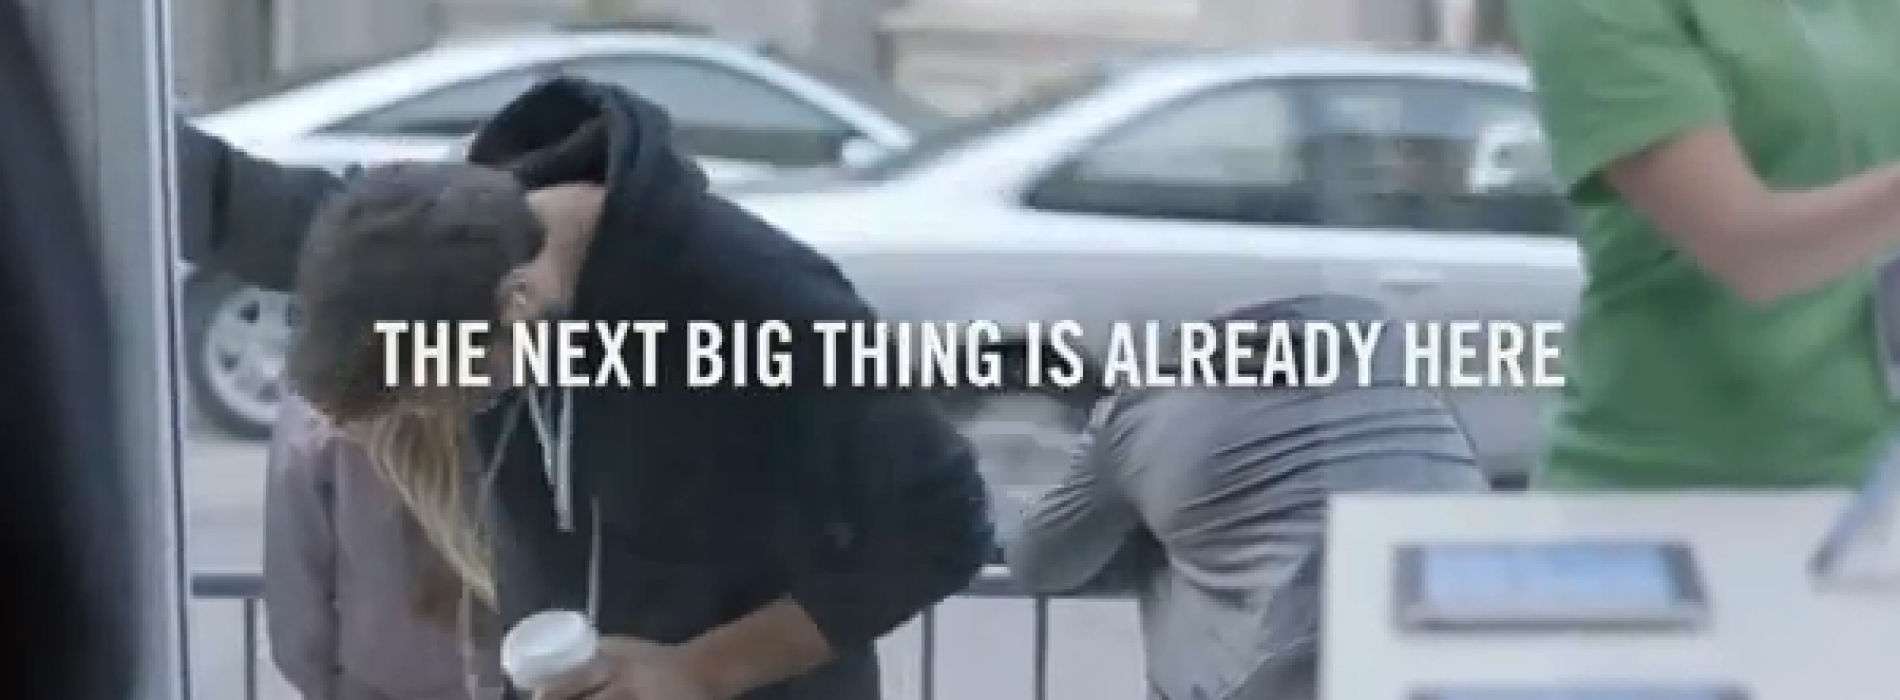 The Next Big Thing Has 4G Enabled Speed [VIDEO]